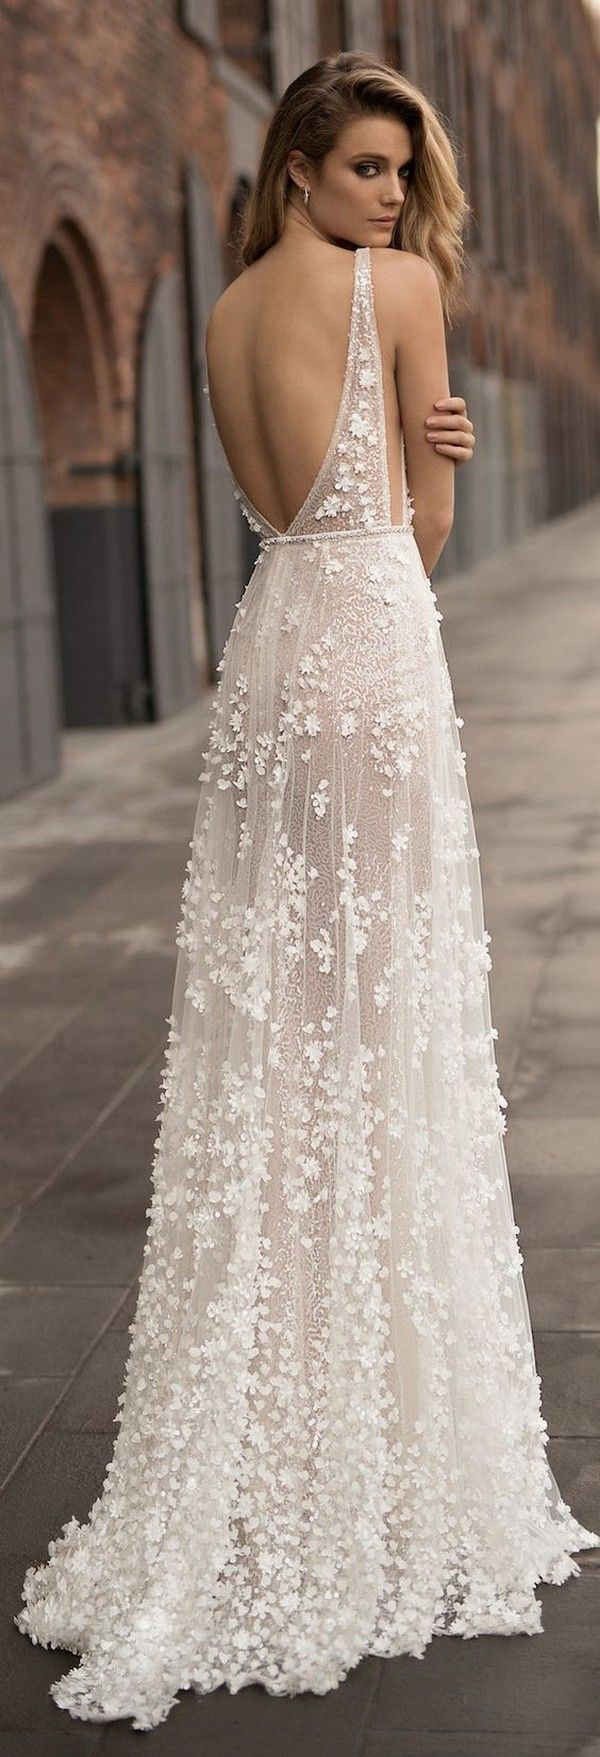 Top boho wedding dresses for trends page of wedding